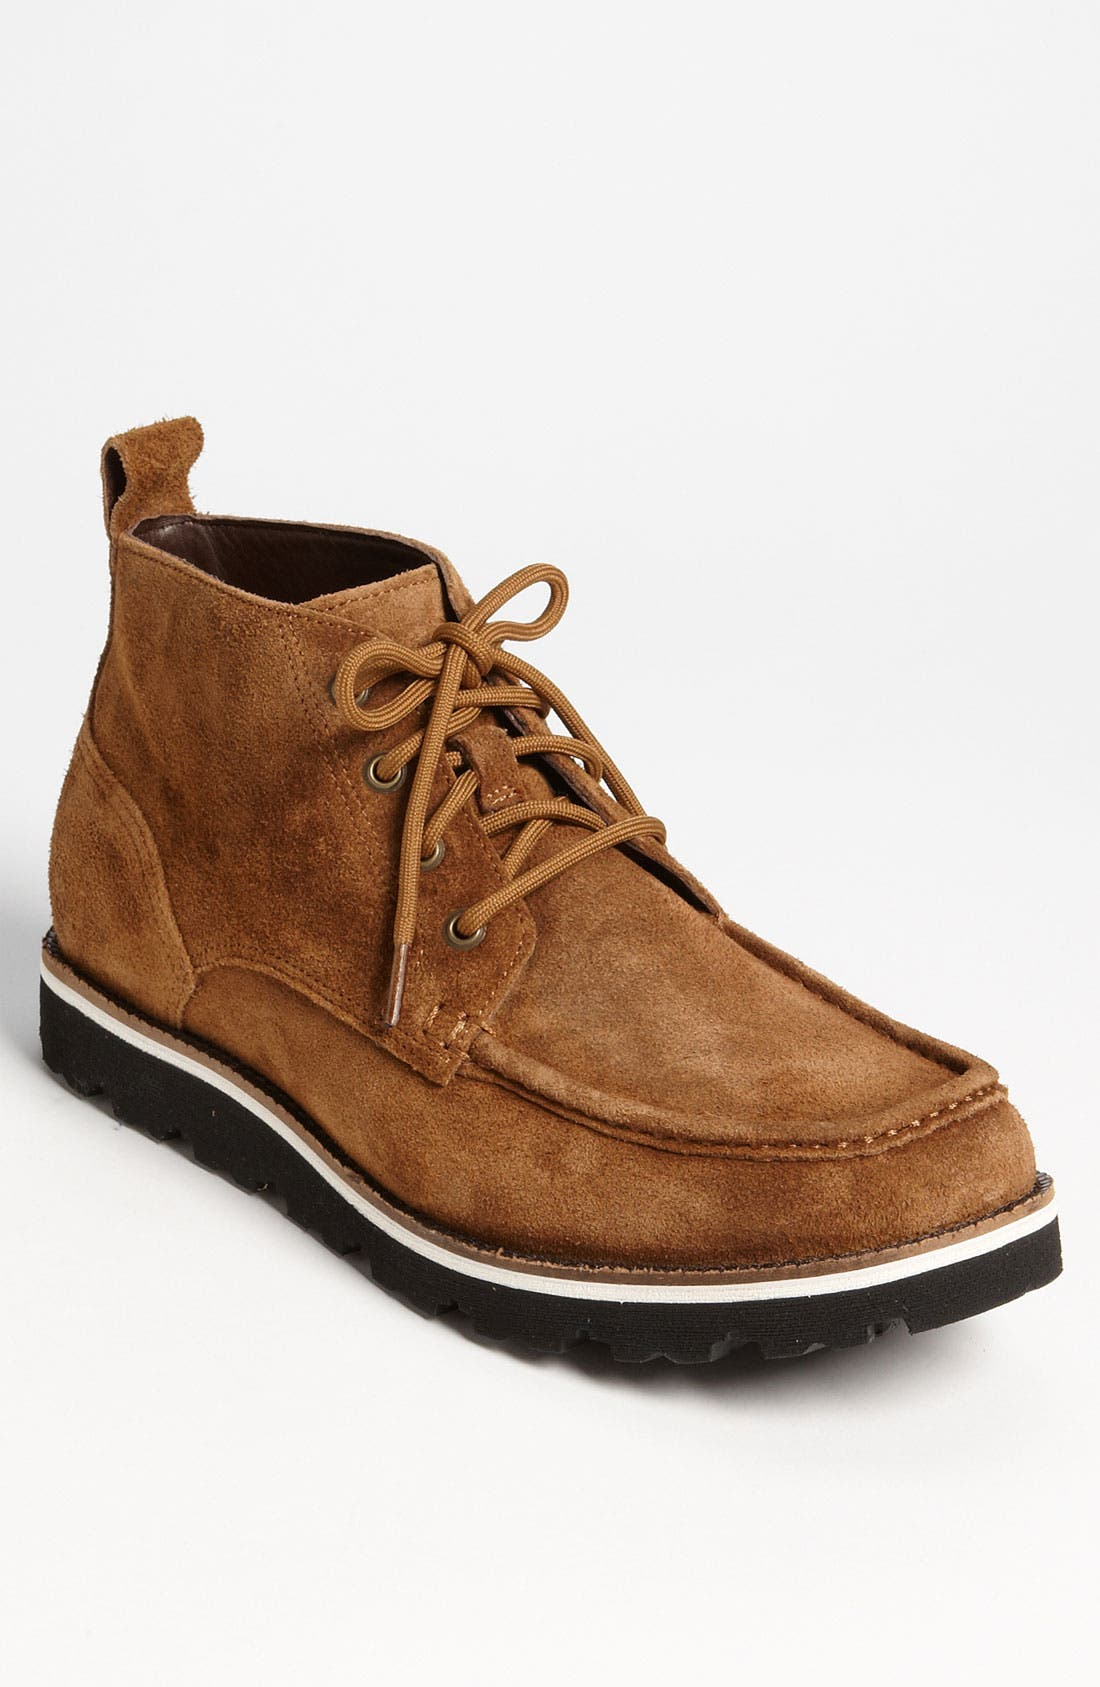 Alternate Image 1 Selected - Cole Haan 'Air Hunter' Chukka Boot